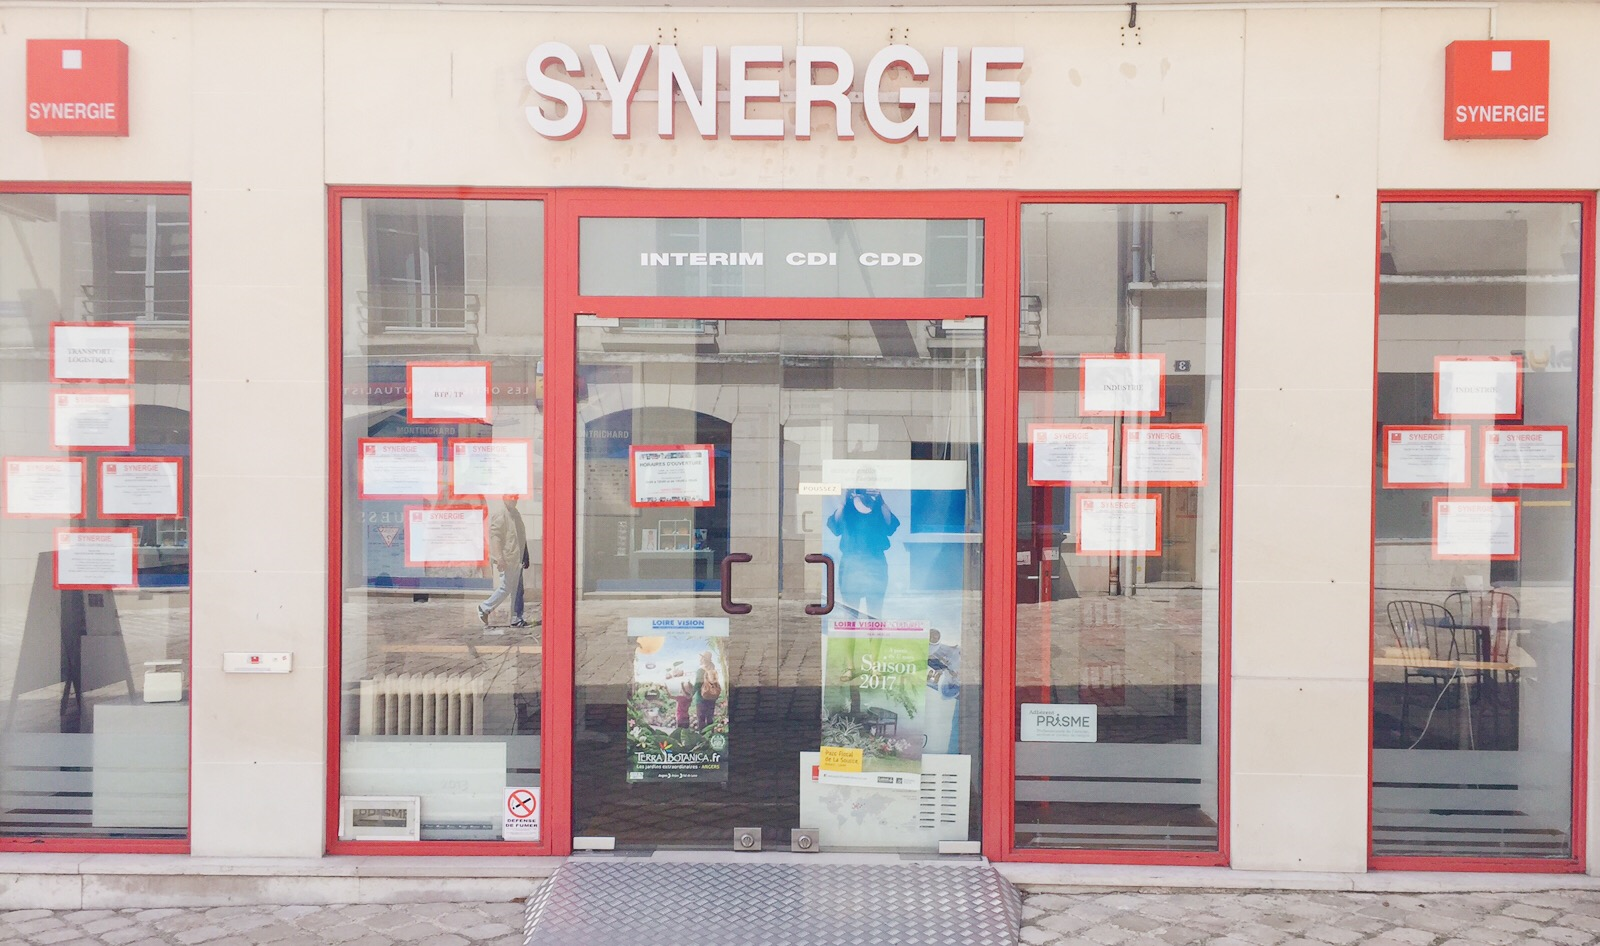 Agence Synergie Blois